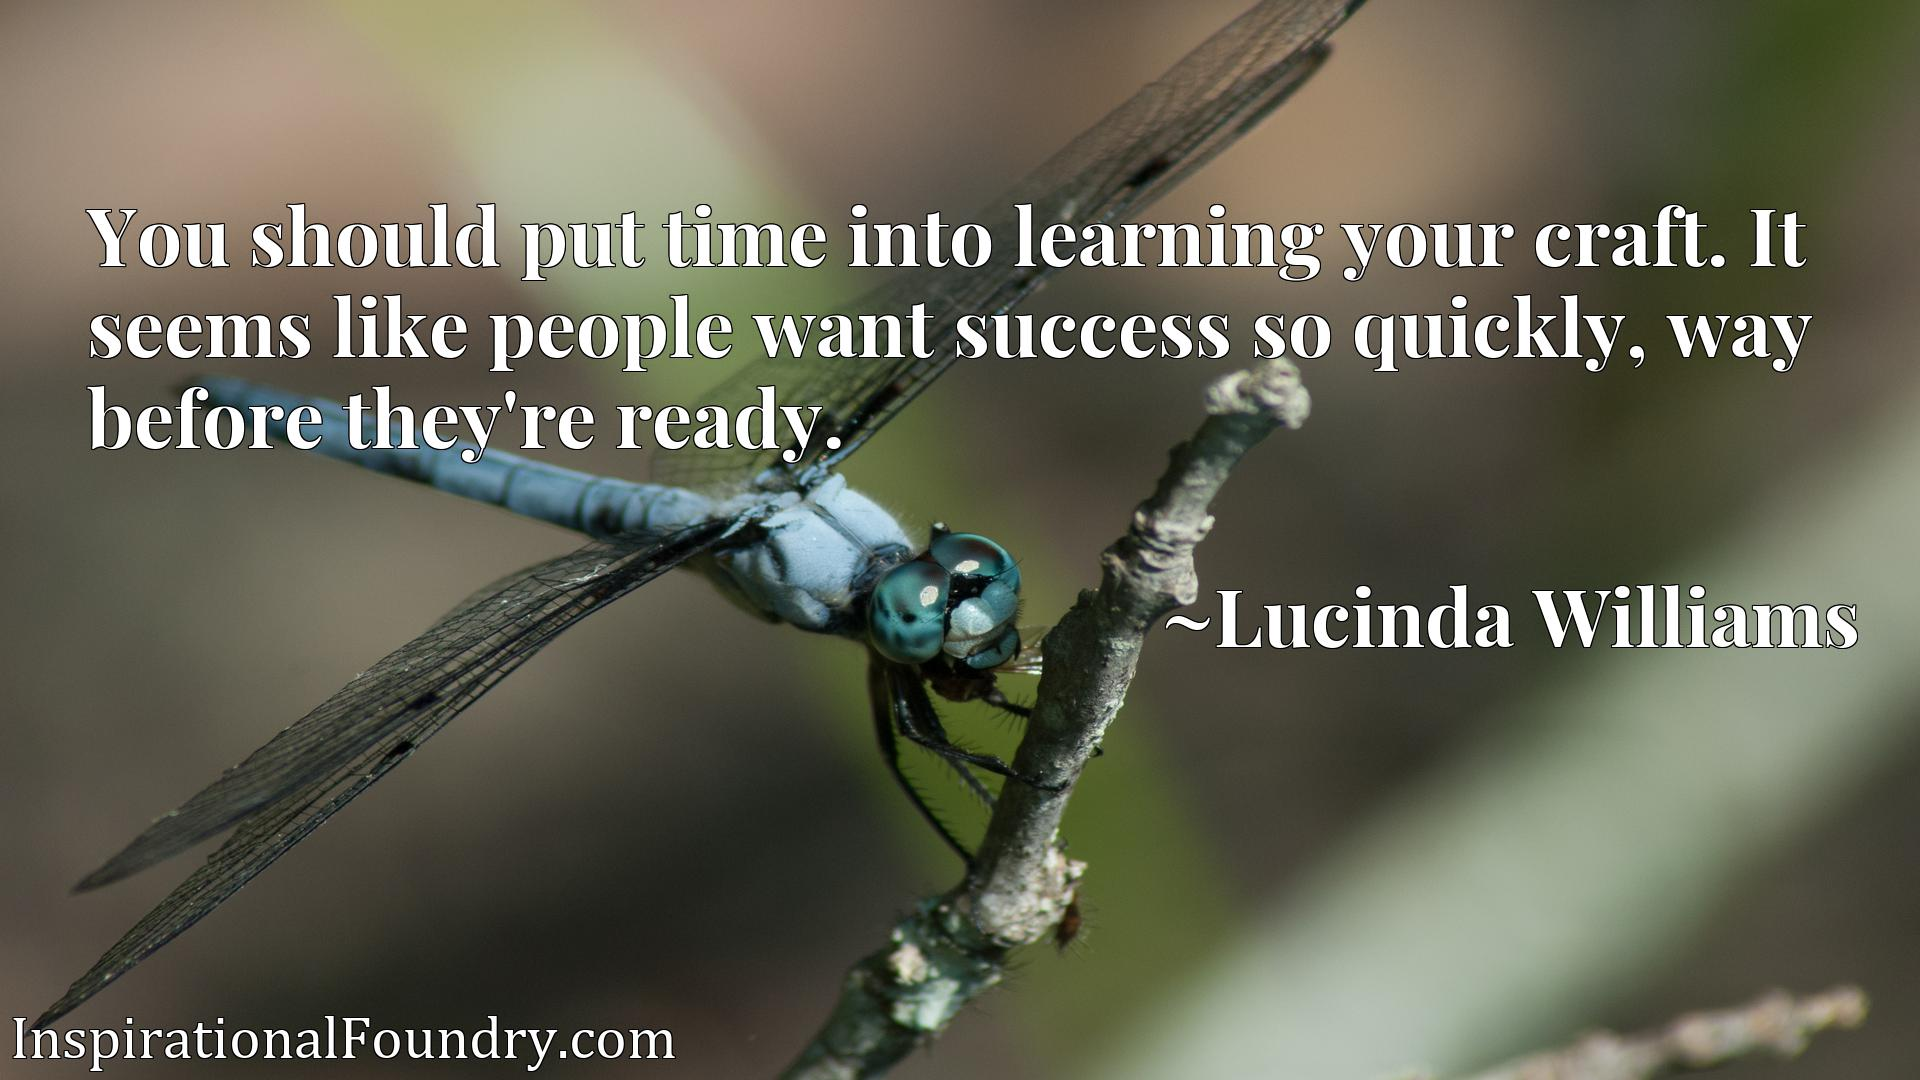 You should put time into learning your craft. It seems like people want success so quickly, way before they're ready.